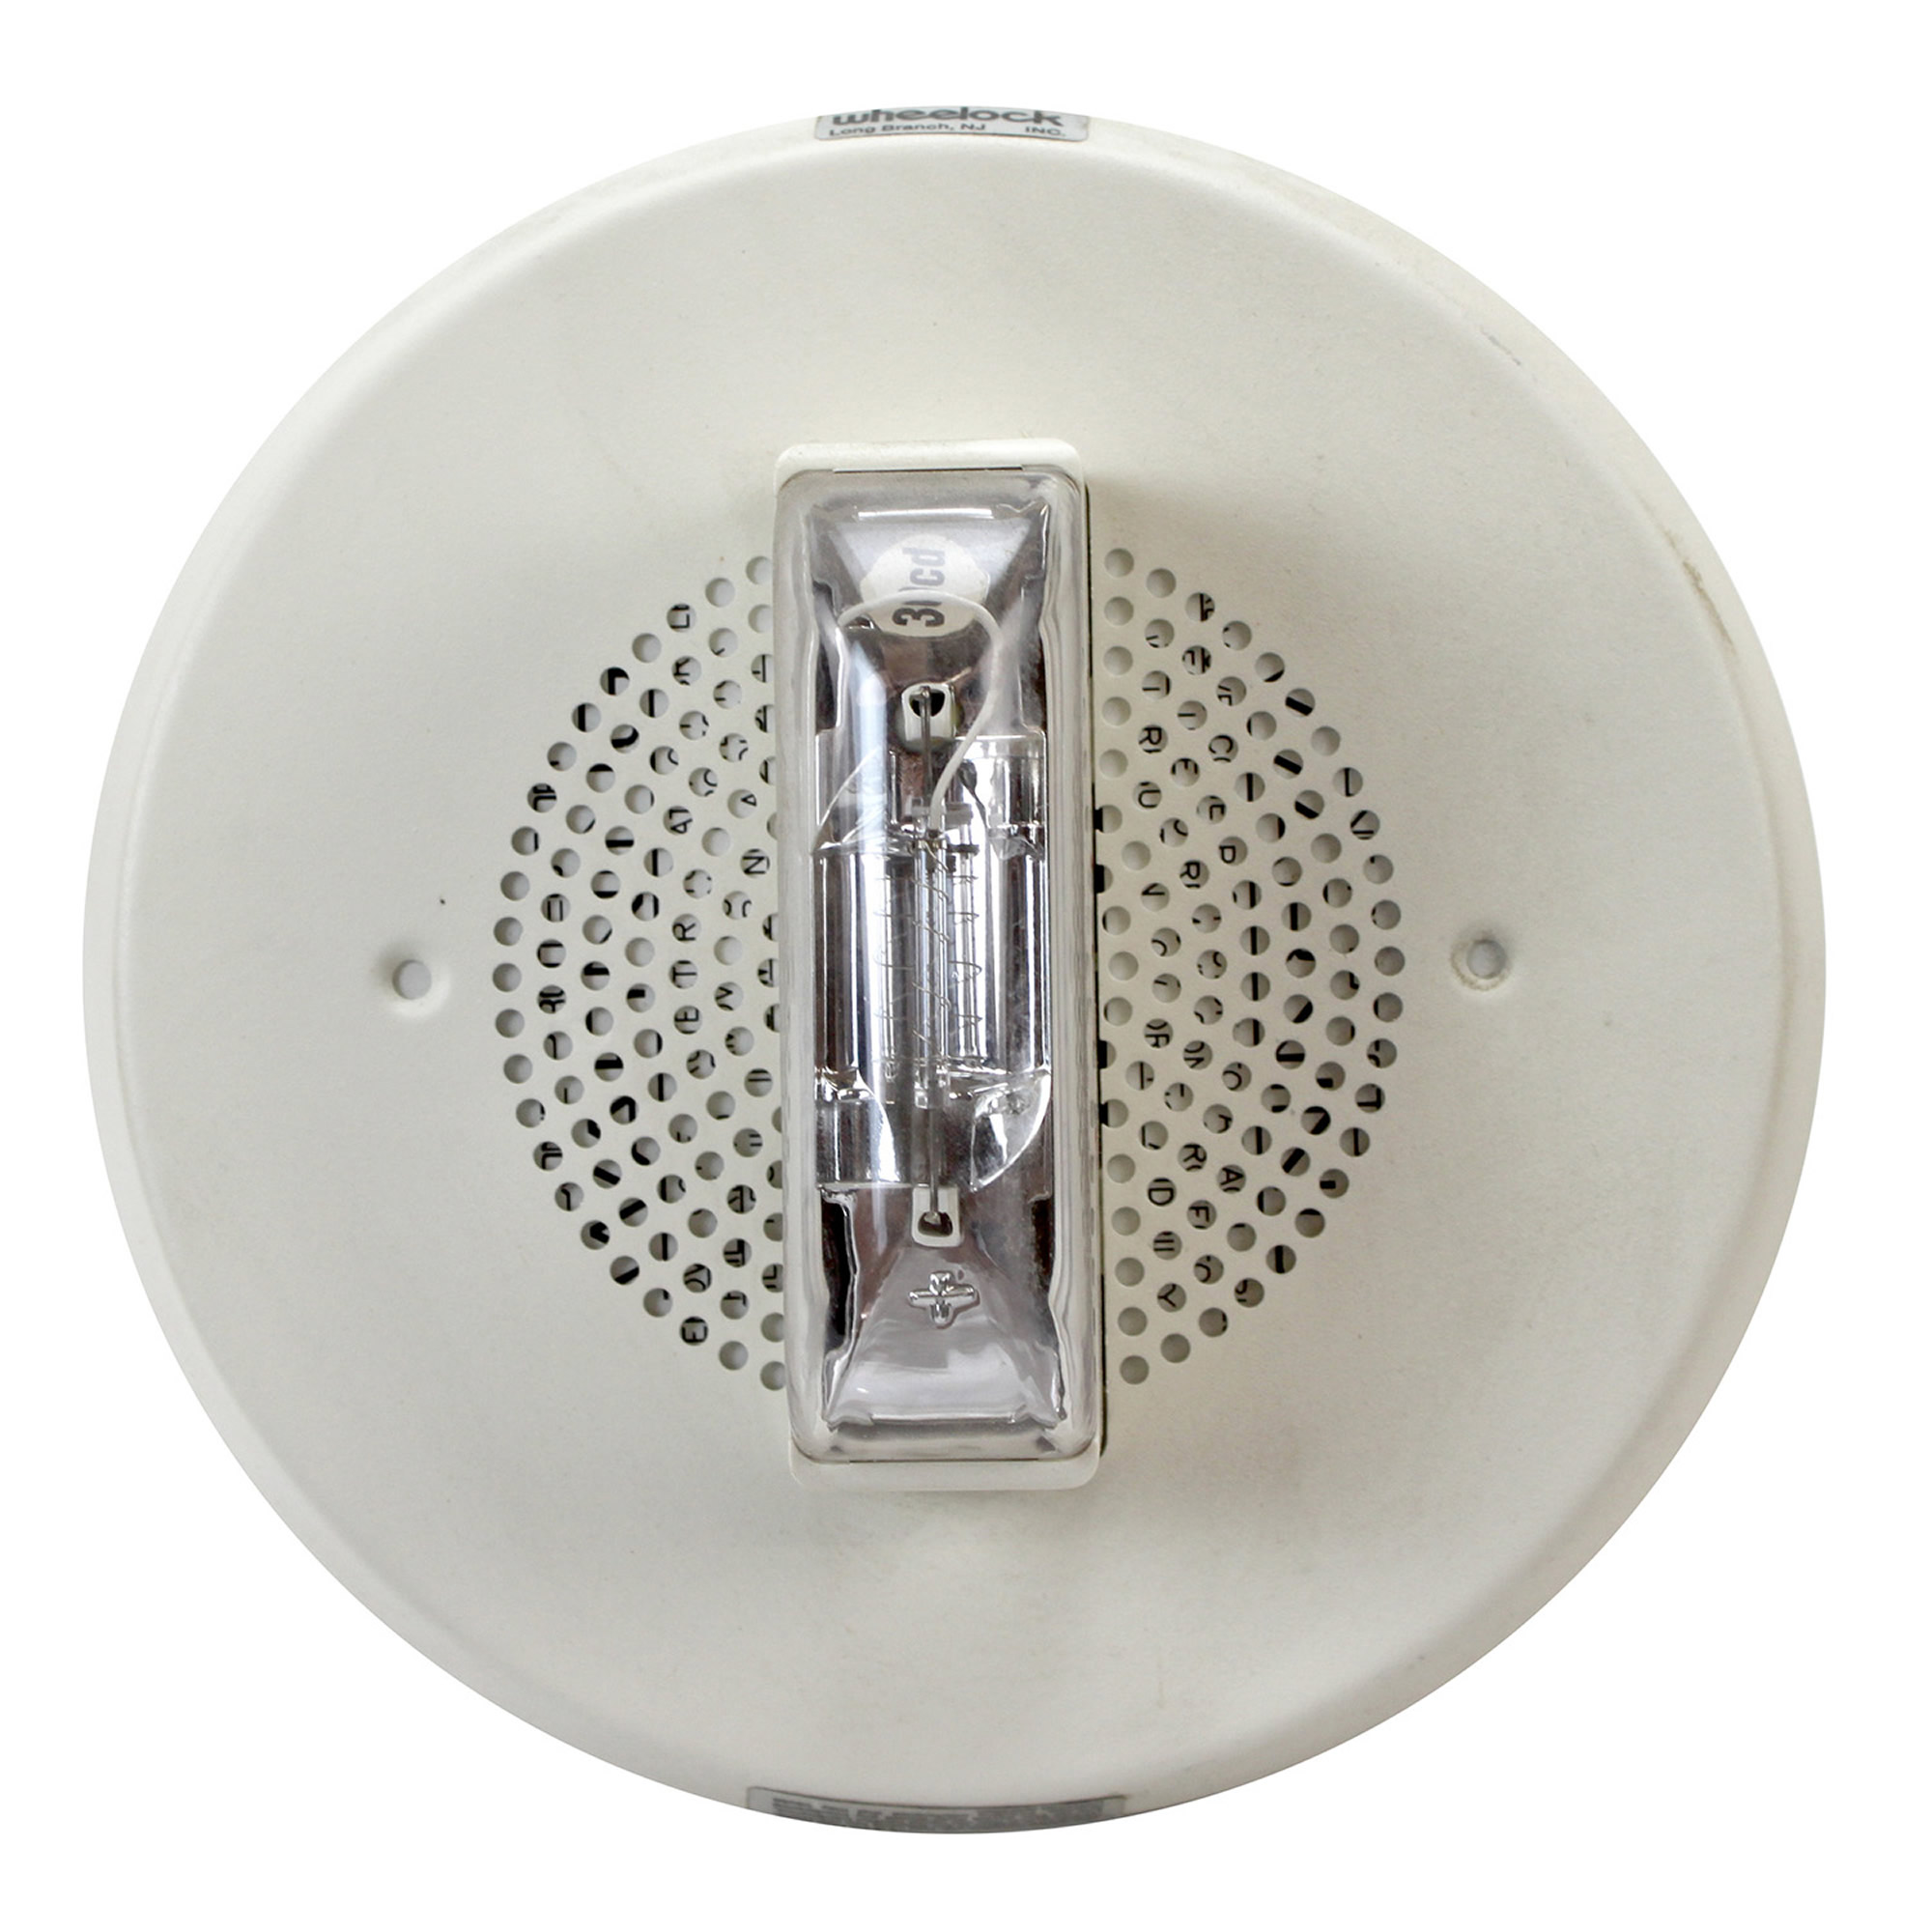 cooper wheelock et90-2430c-fw ceiling fire alarm speaker ... fire alarm systems wiring diagrams cooper fire alarm speaker wiring #7